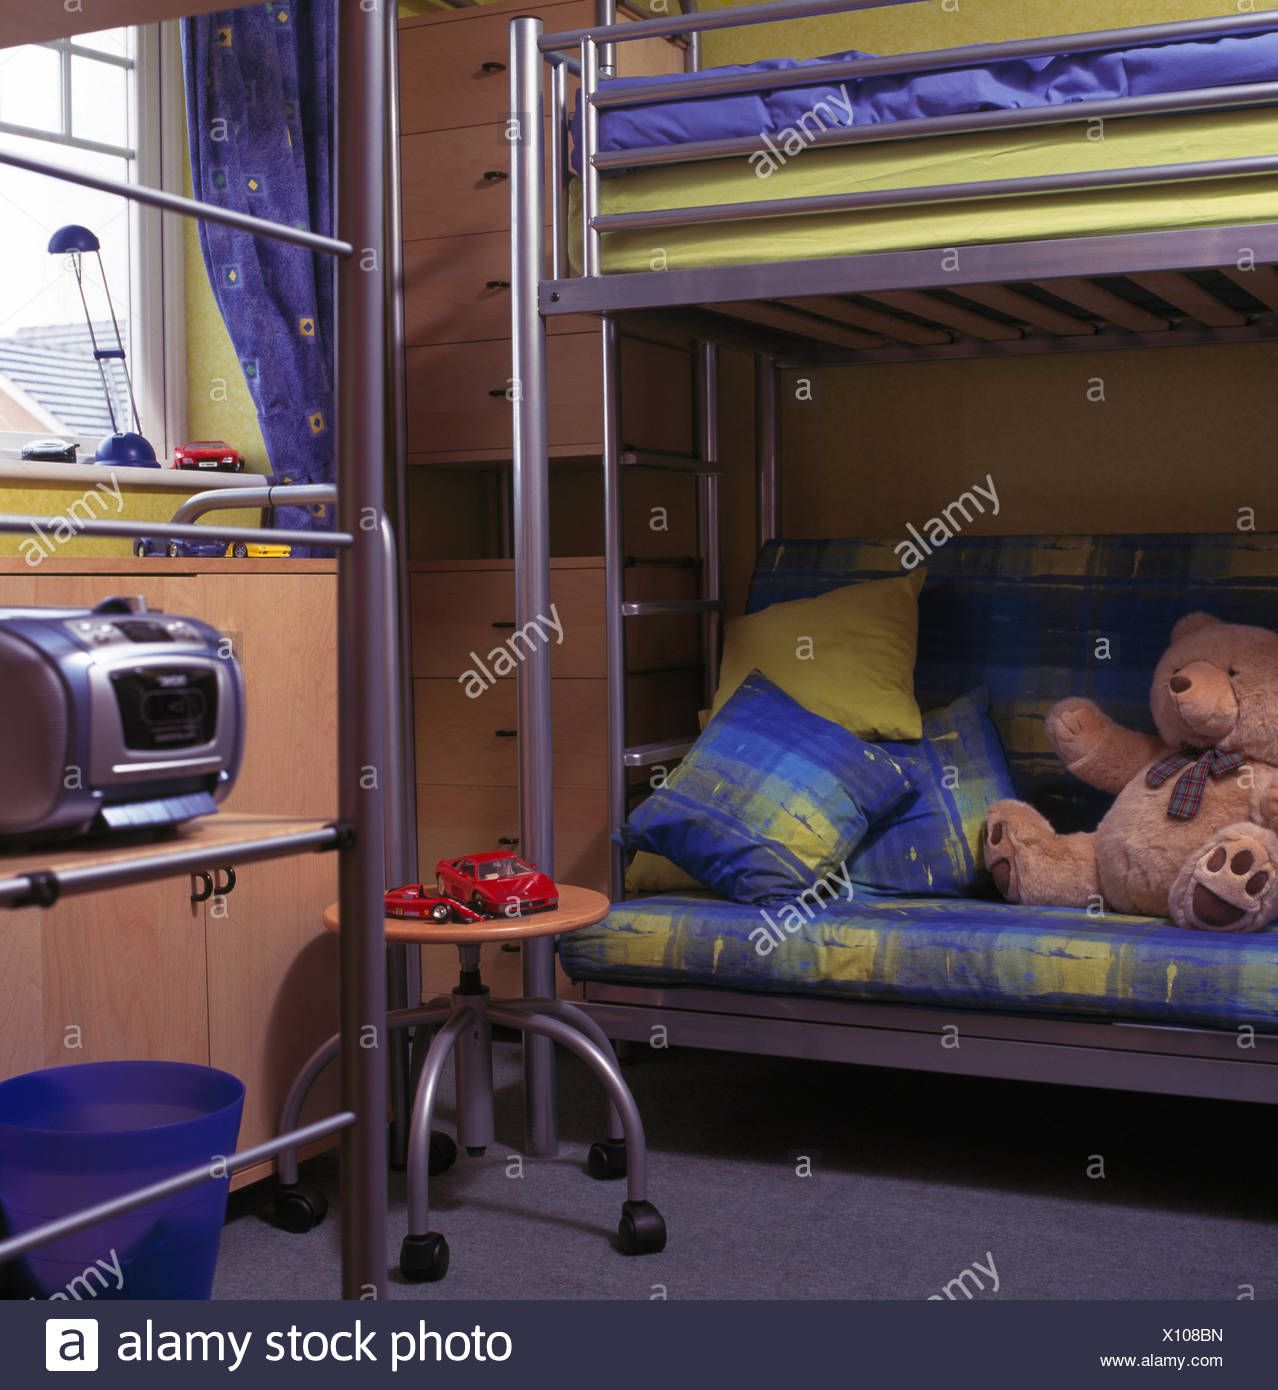 Picture of: Blue Green Cushions And Linen On Stainless Steel Bunk Beds In Children S Nineties Bedroom With Retro Radio Stock Photo Alamy